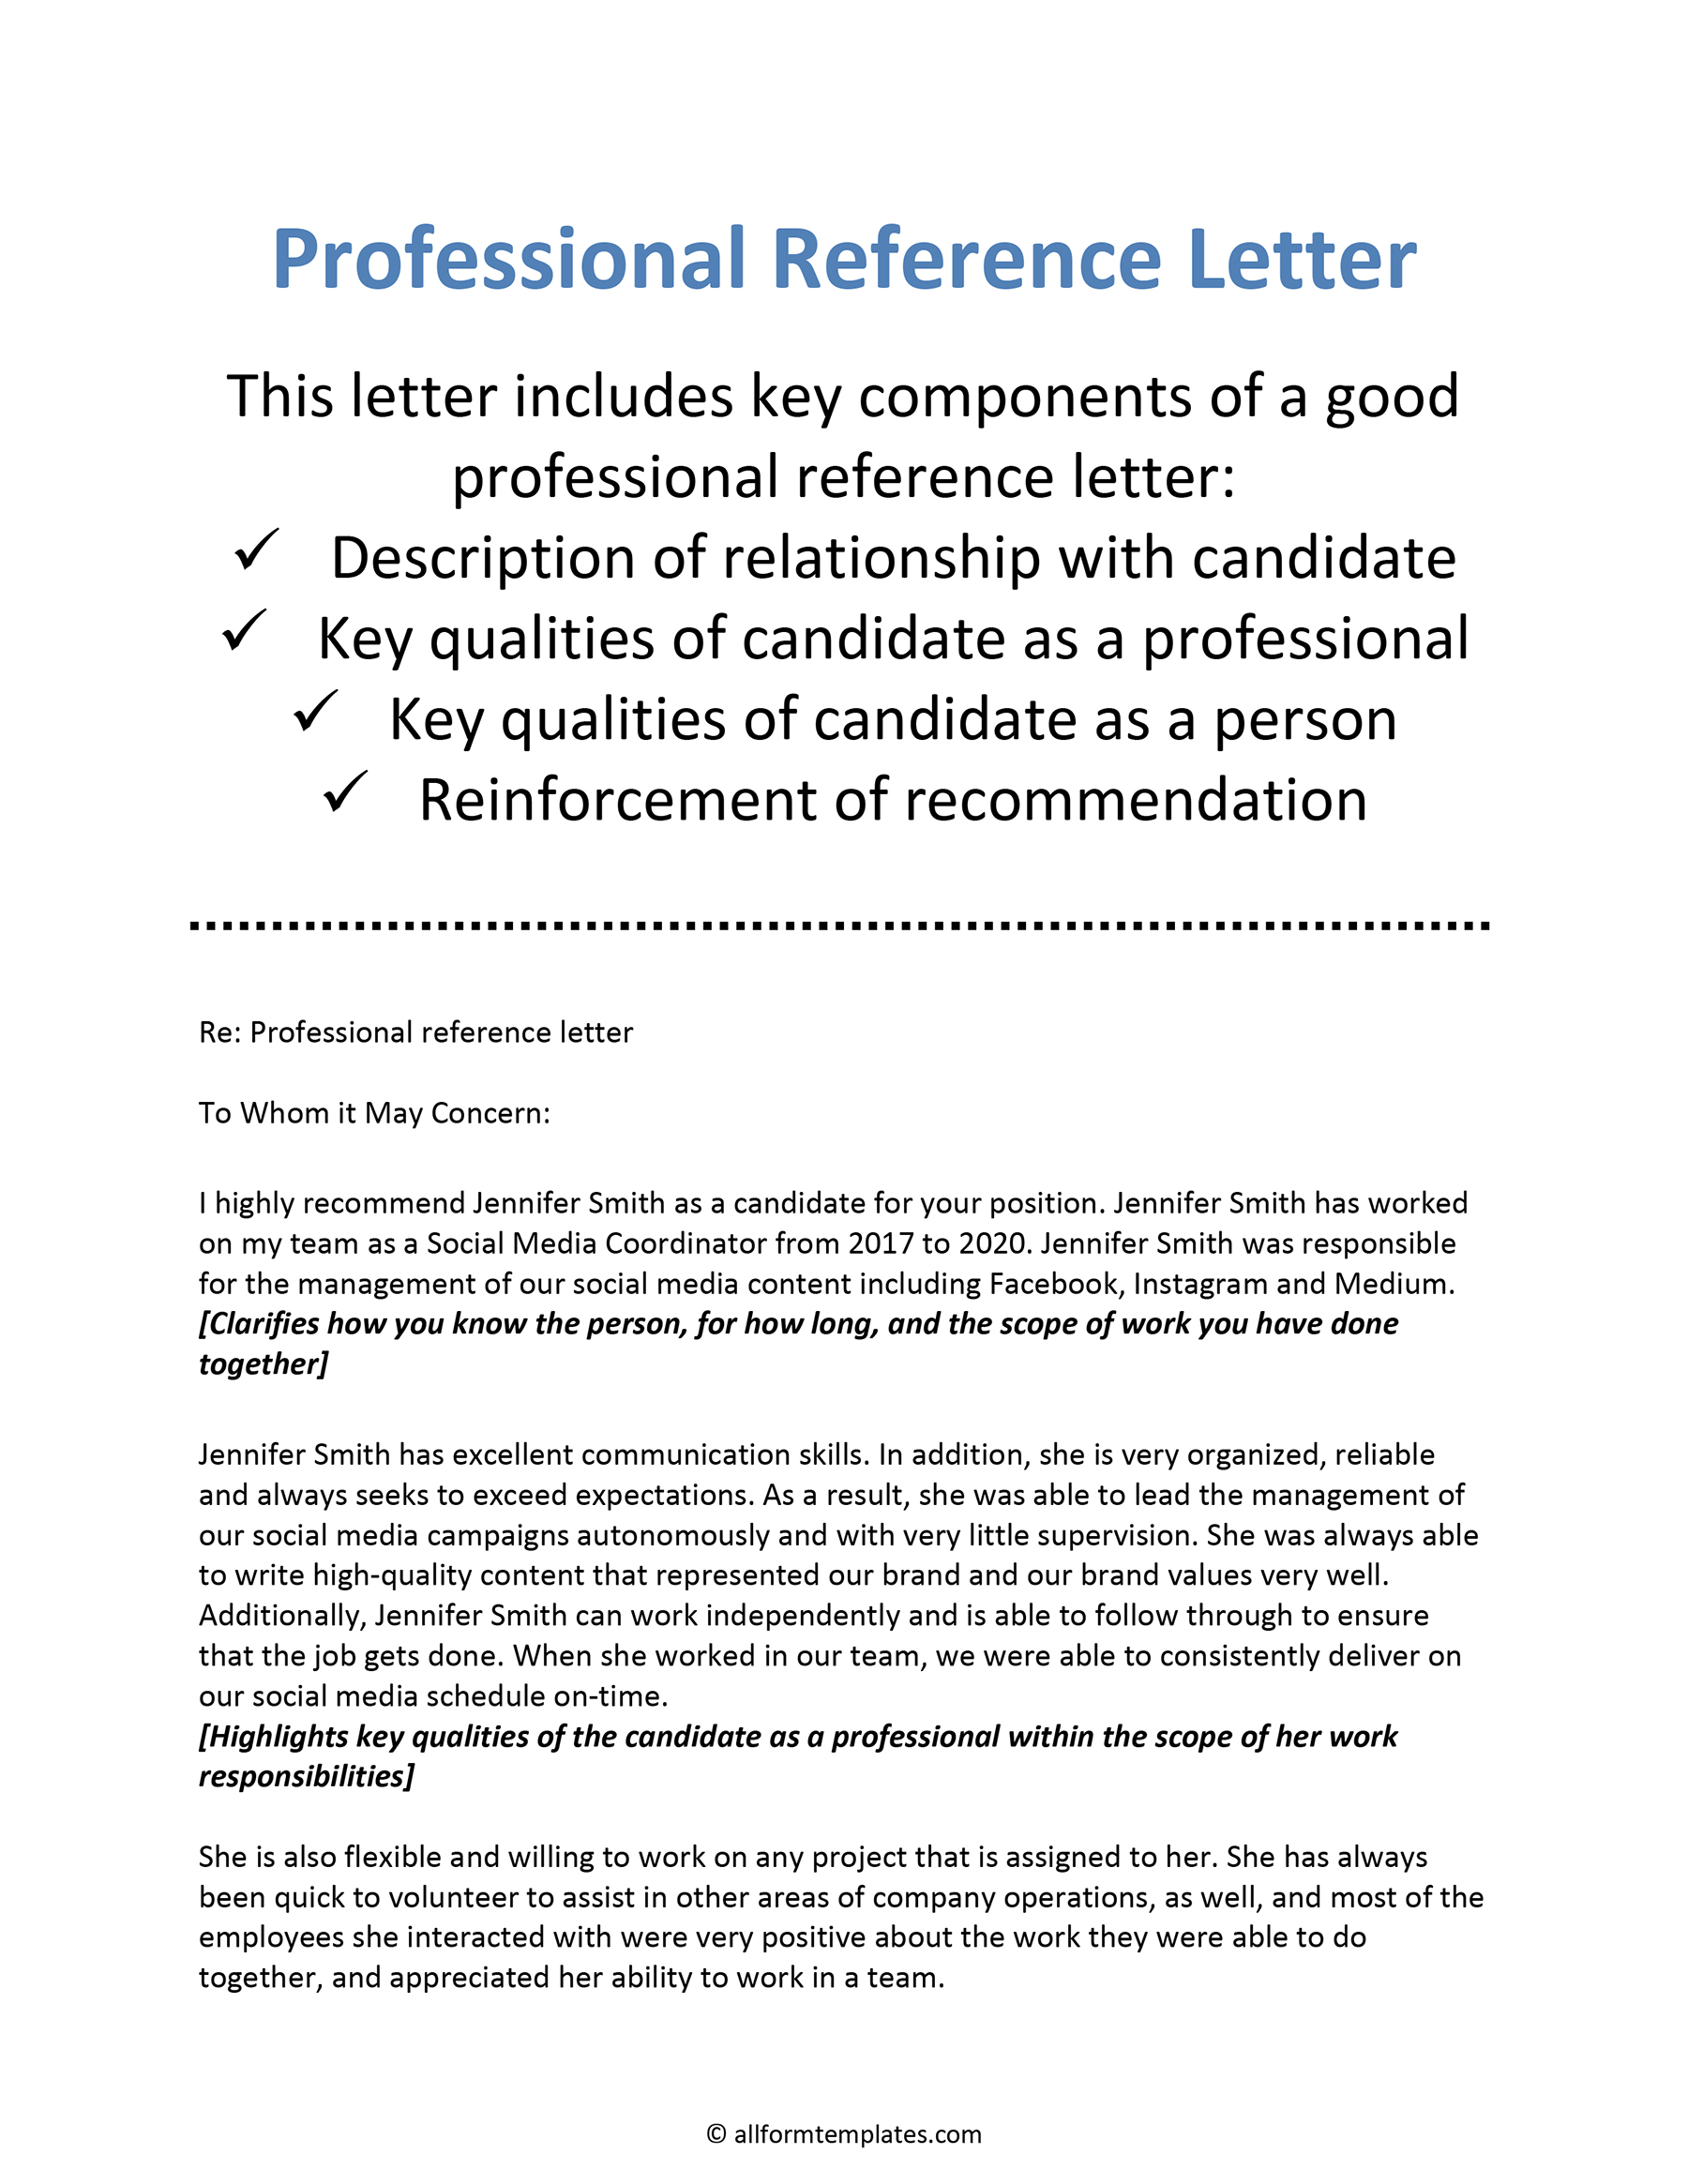 Professional-character-reference-letter-01-HD